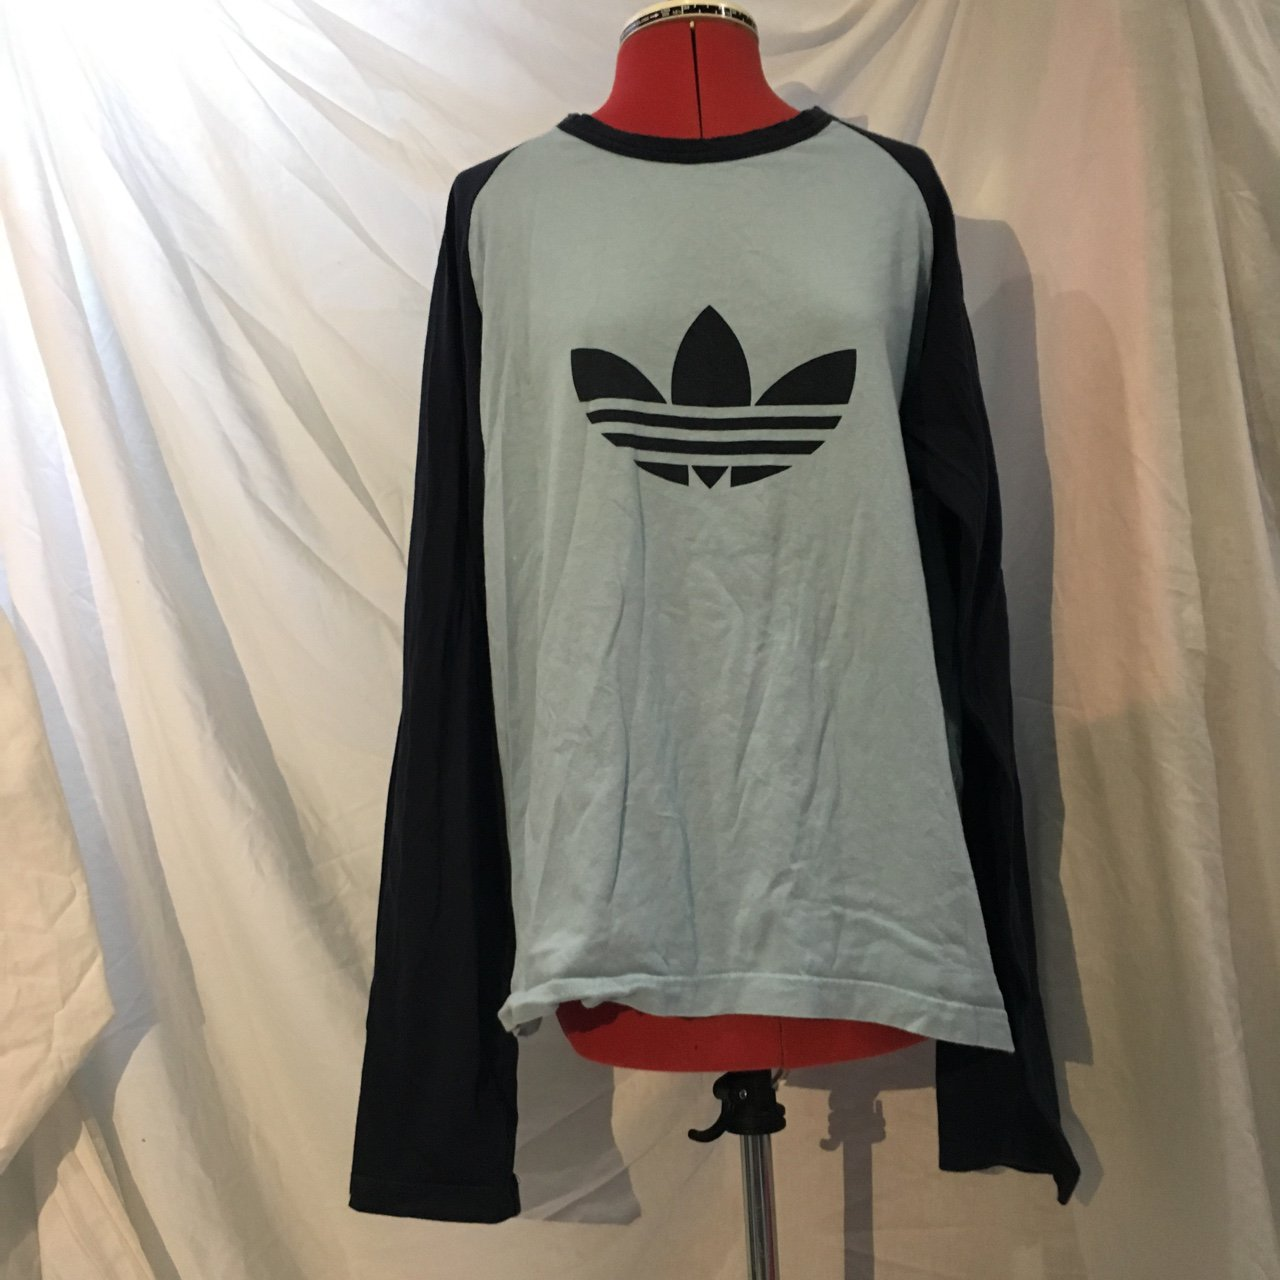 7594c60e34e52 💎Vintage Adidas baby blue   navy long sleeve top 🎈 perfect - Depop